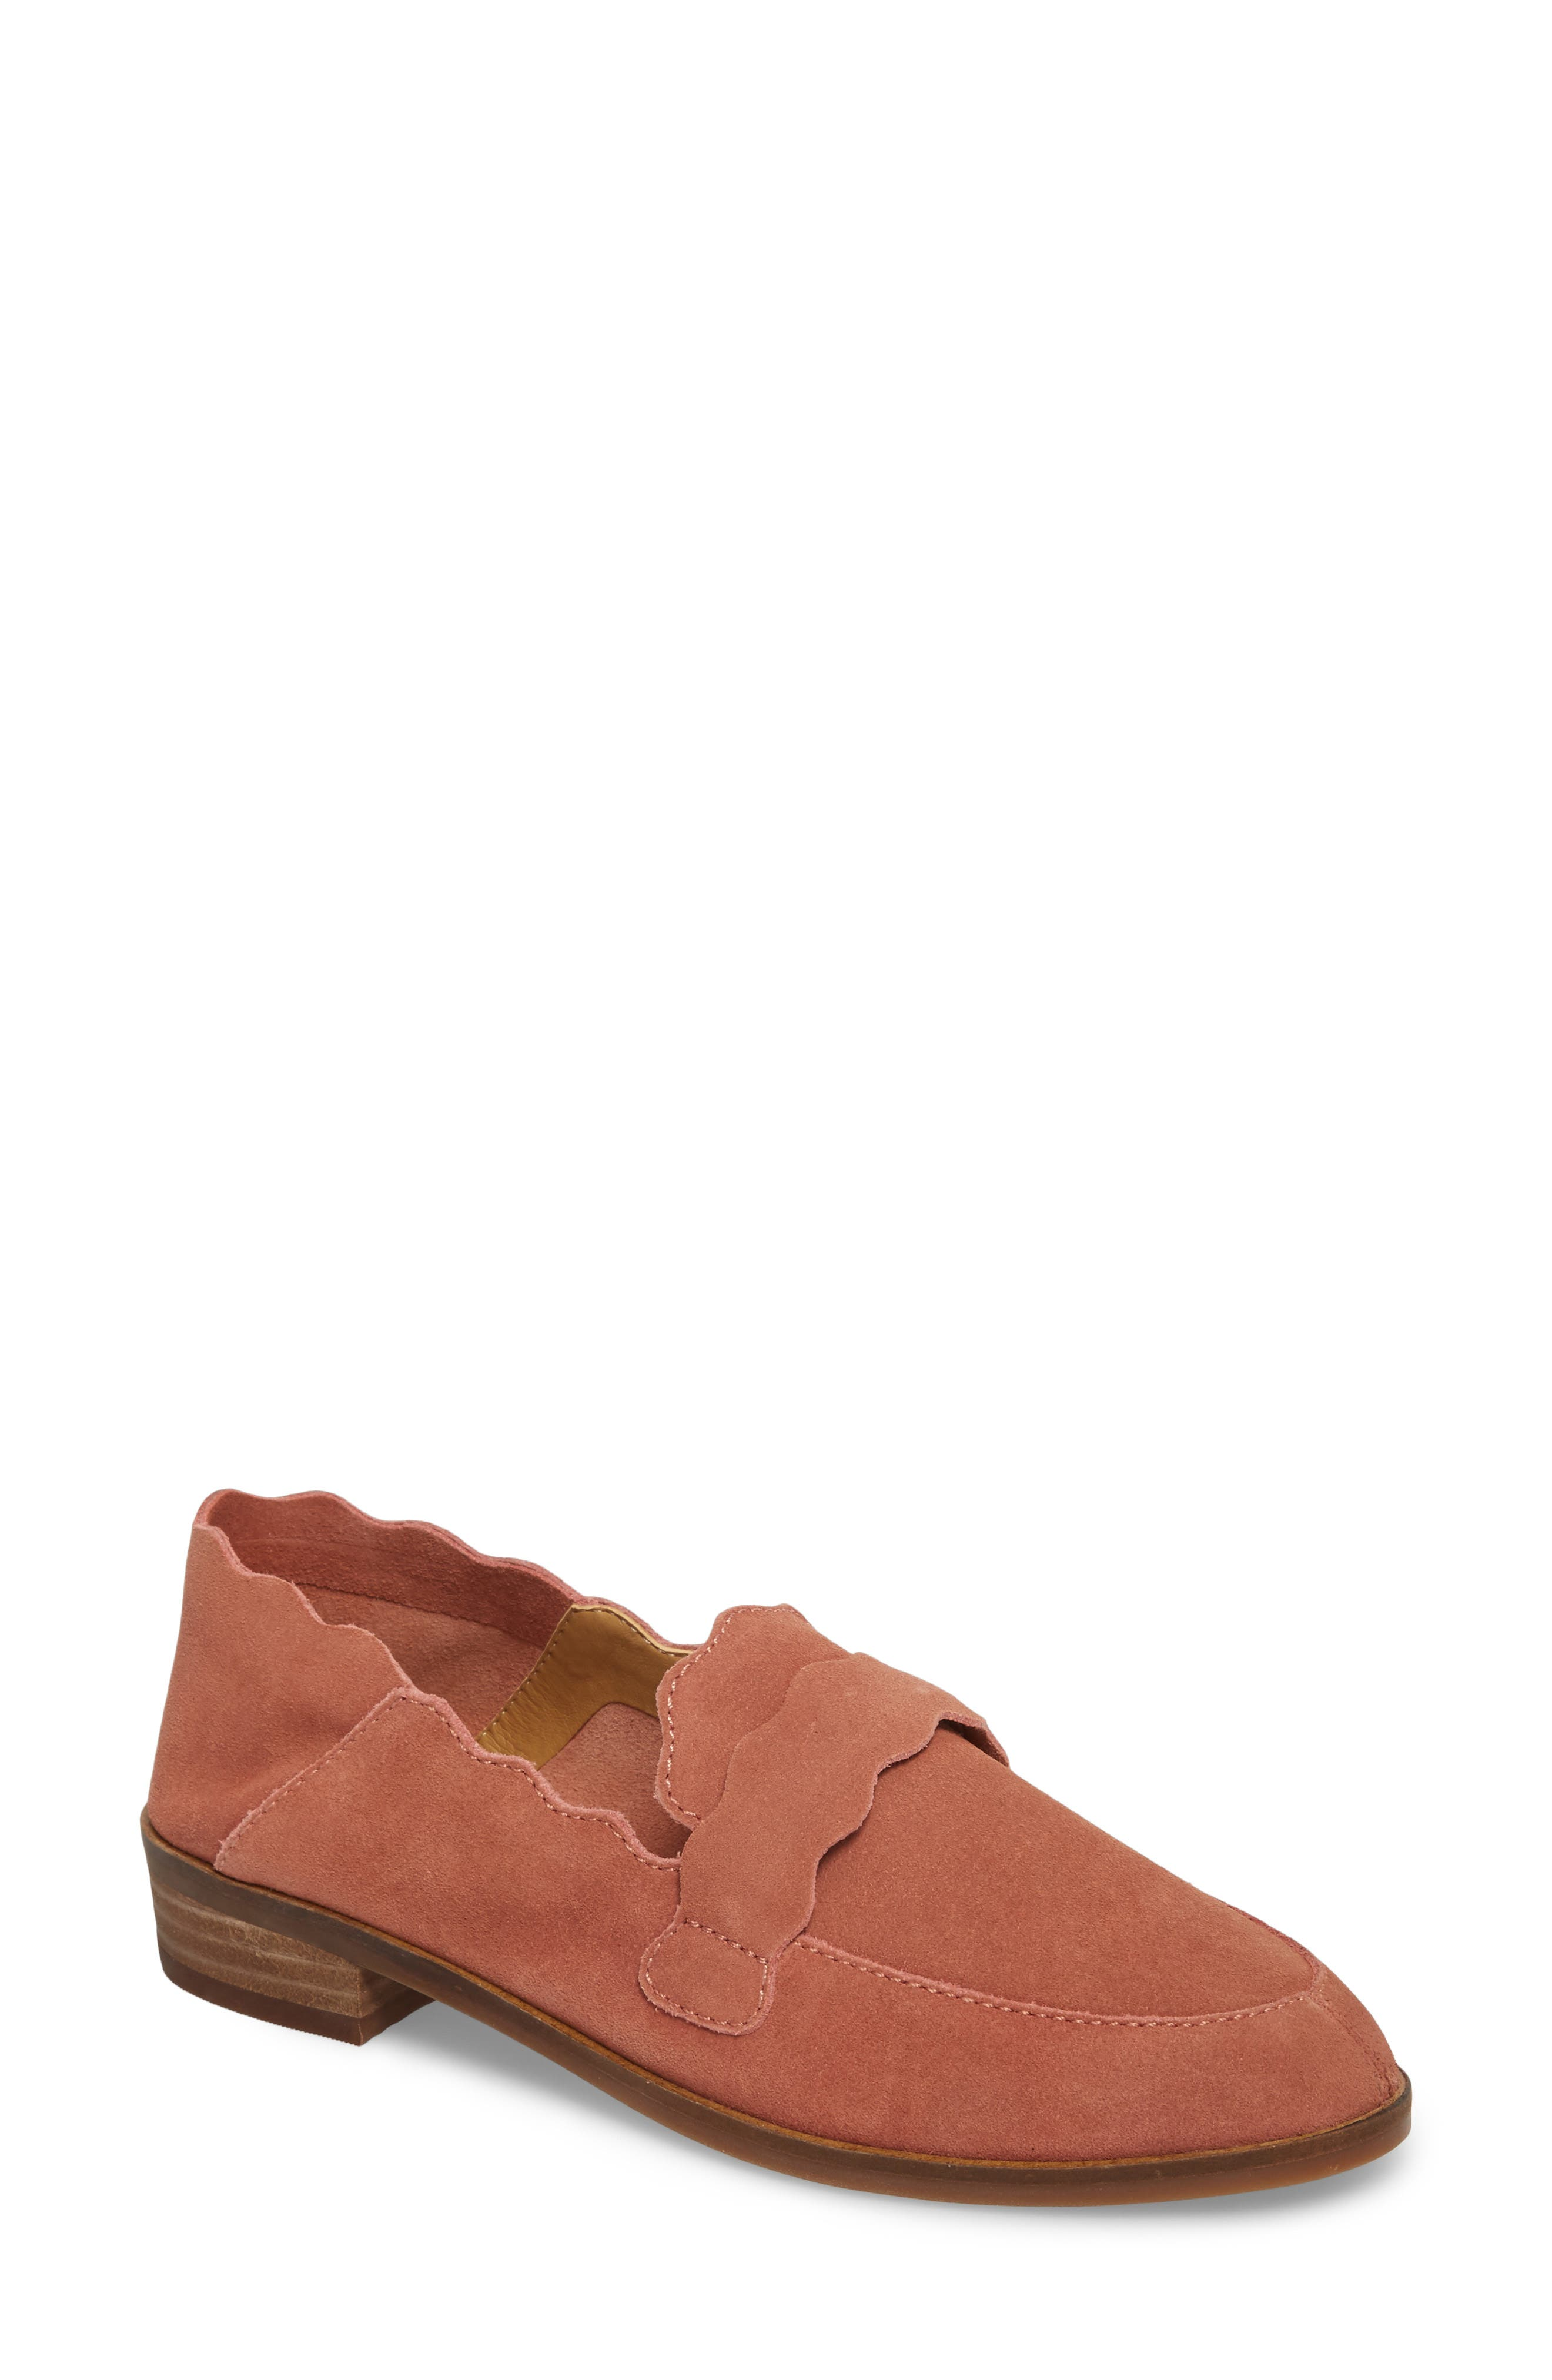 Callister Loafer,                         Main,                         color, Canyon Rose Suede